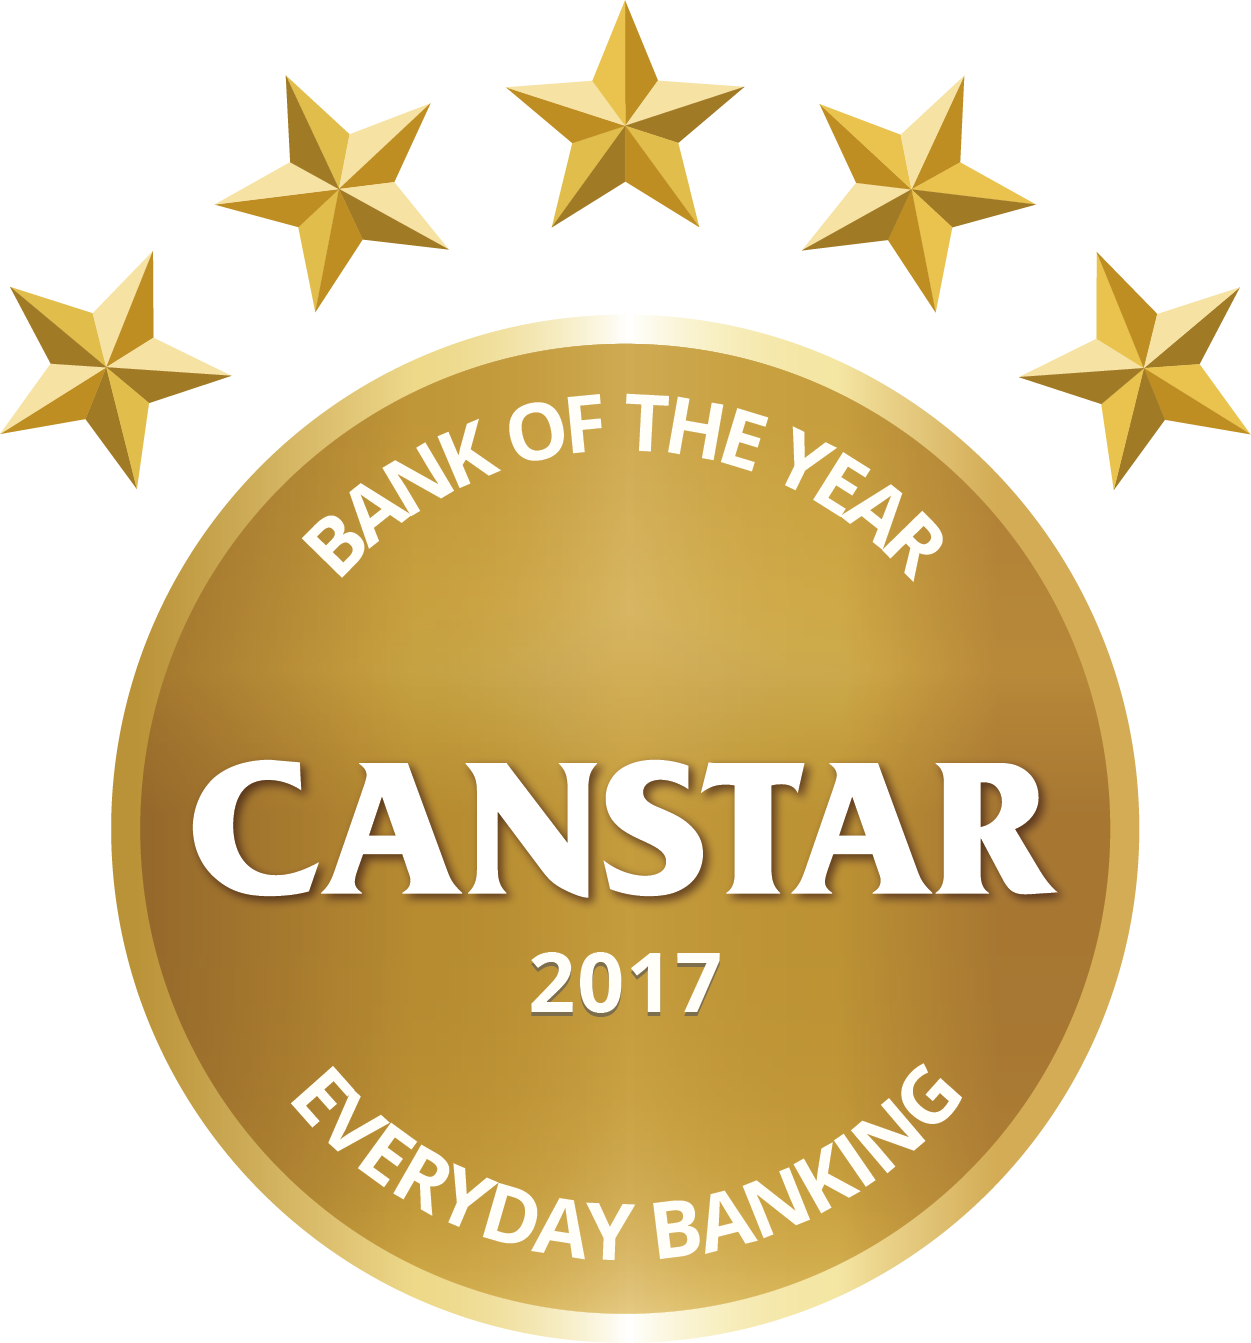 Canstar 2017 - Bank of the Year - Everyday Banking